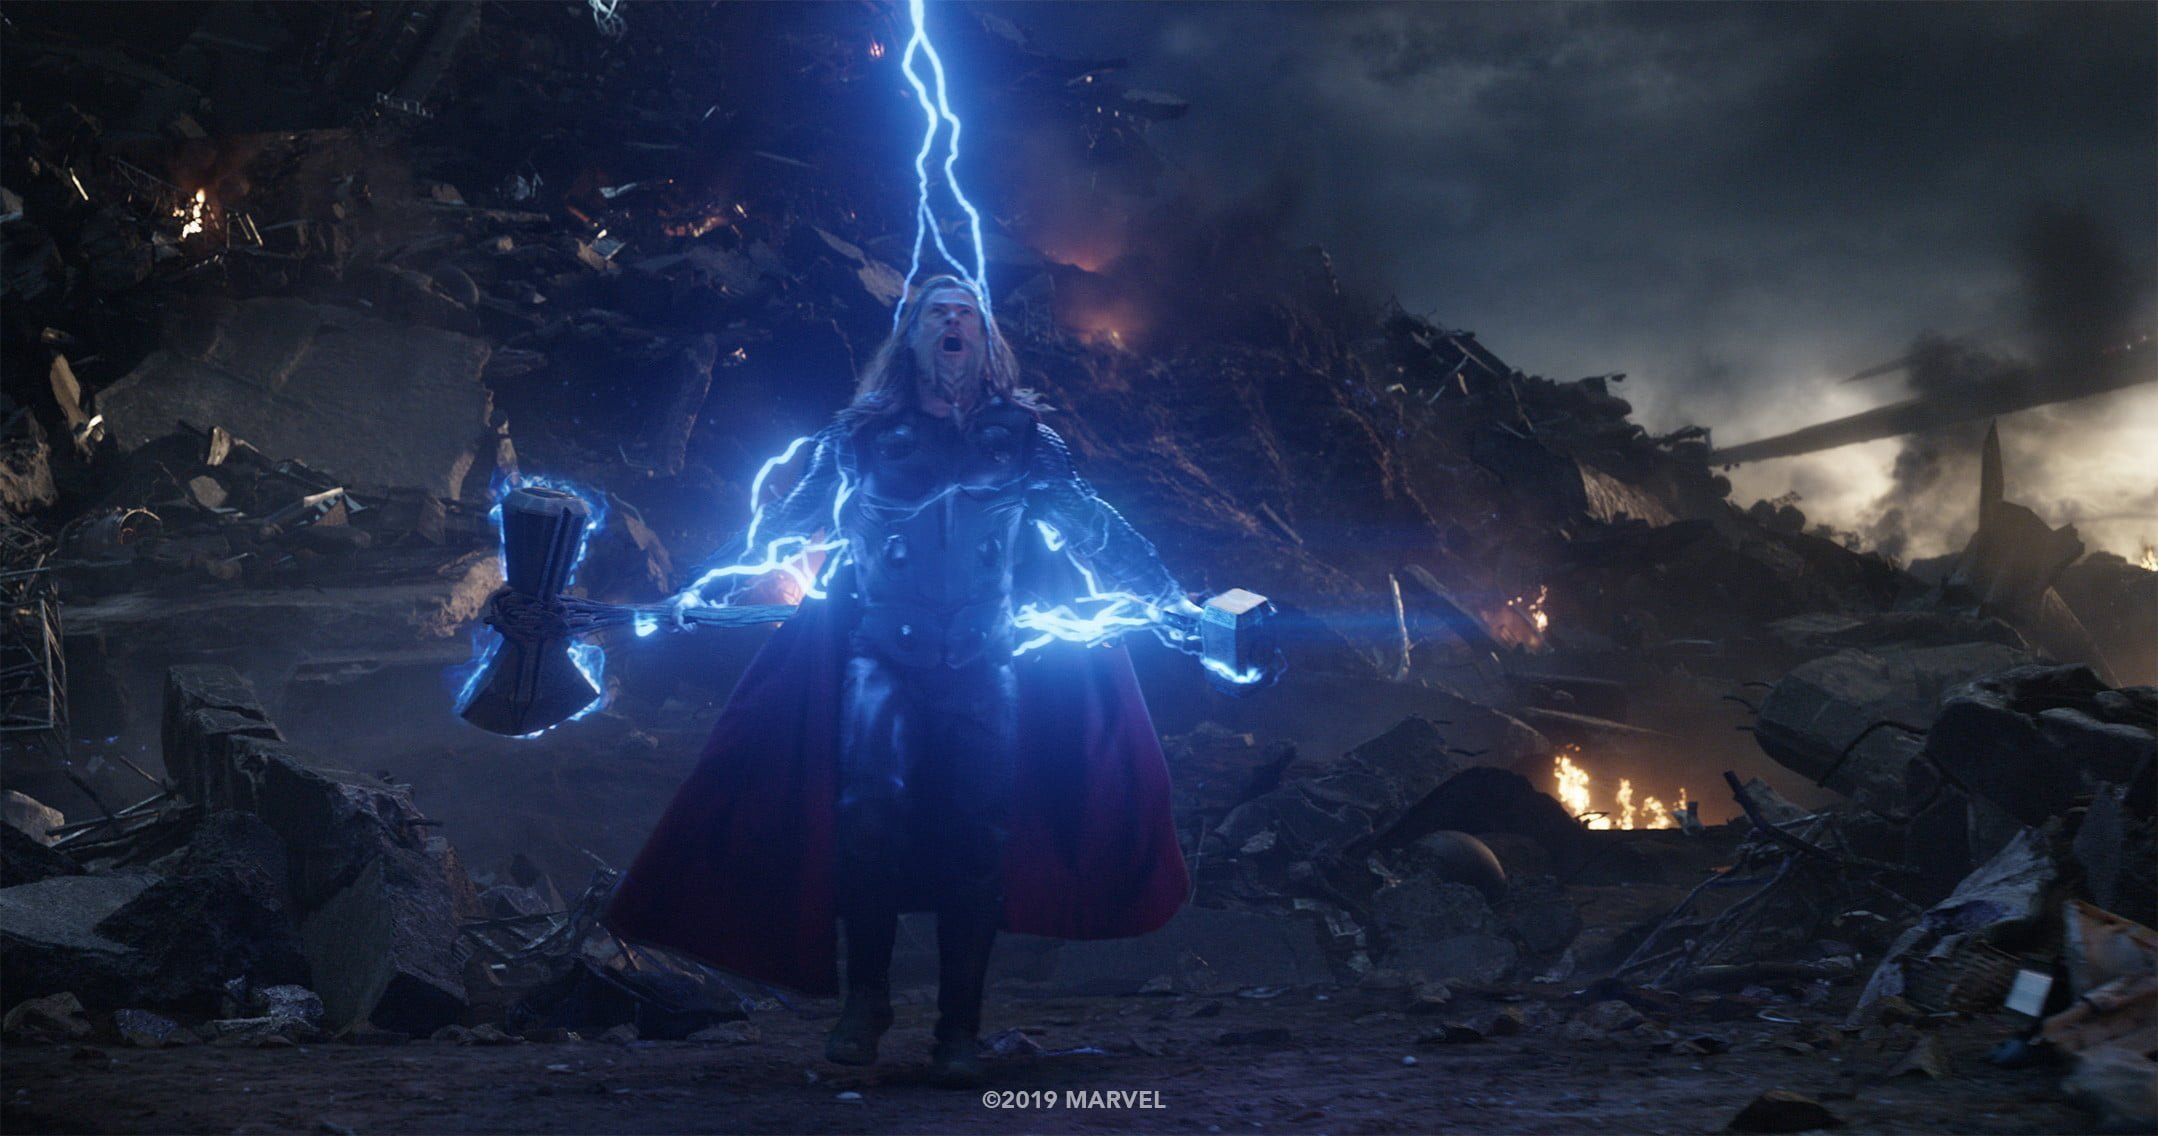 Photo du film Avengers: Endgame avec Thor traversé par la foudre (plan final)